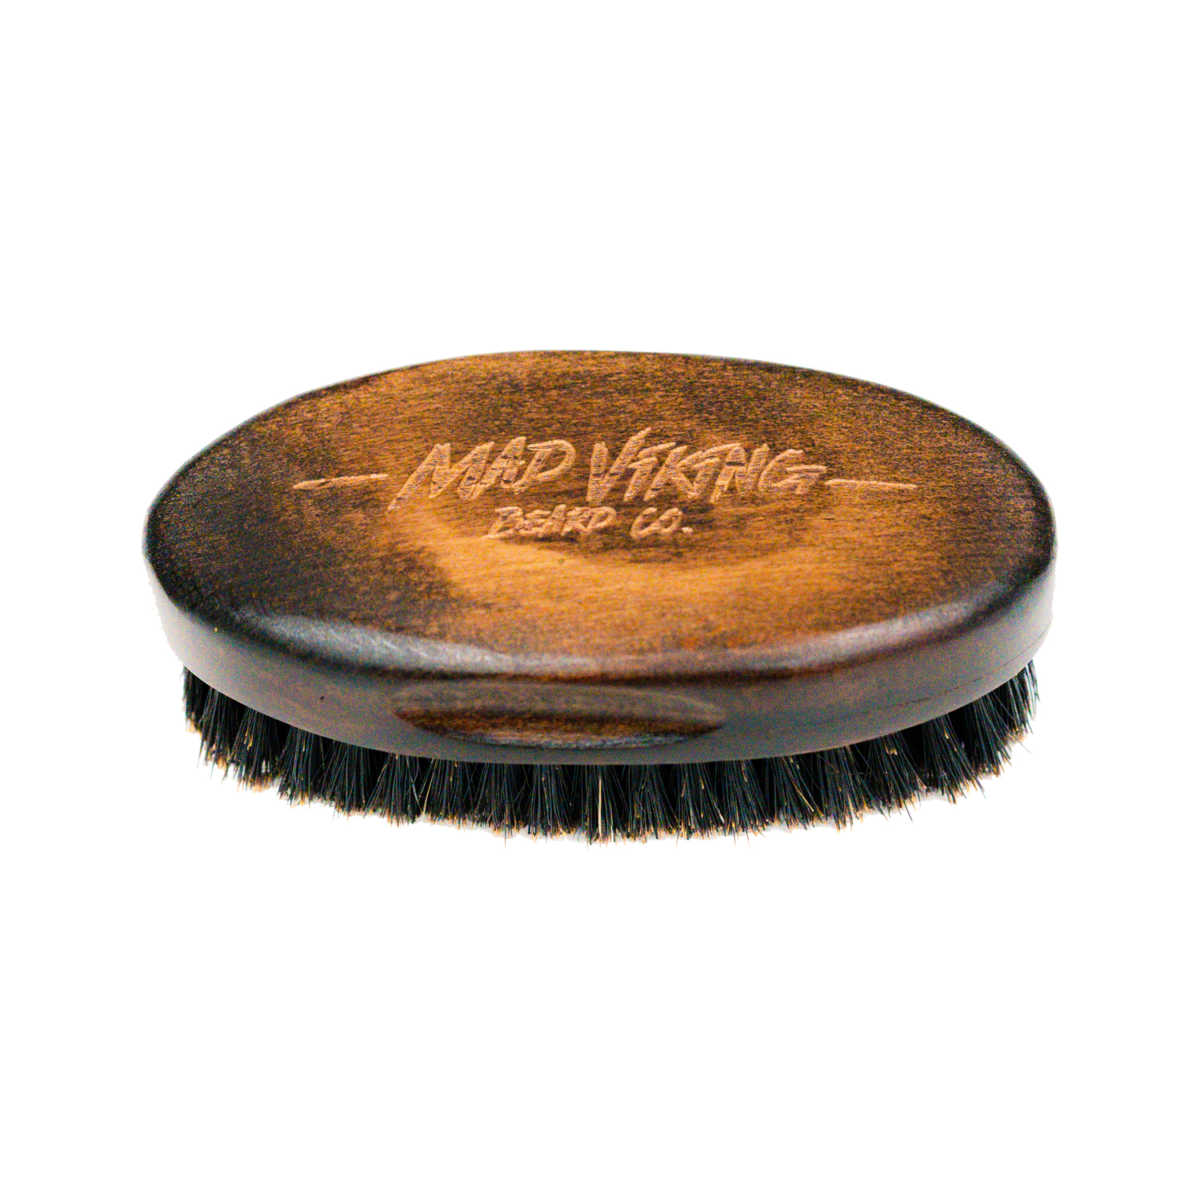 Mad Viking Beard Brush